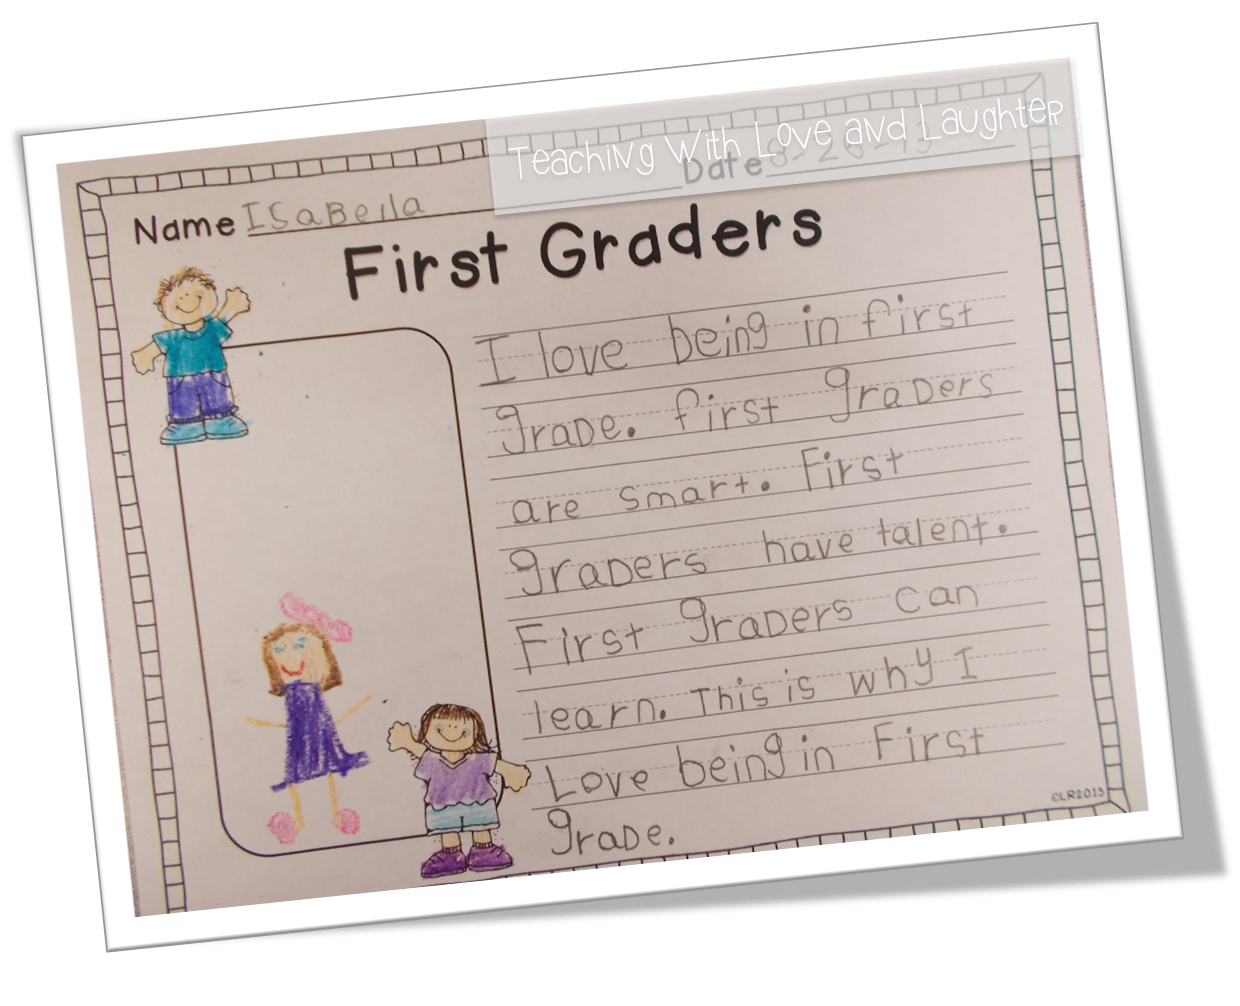 teaching love and laughter kindergarten and first grade writing they all did a great job this writing activity is part of my back to school language activities for first graders